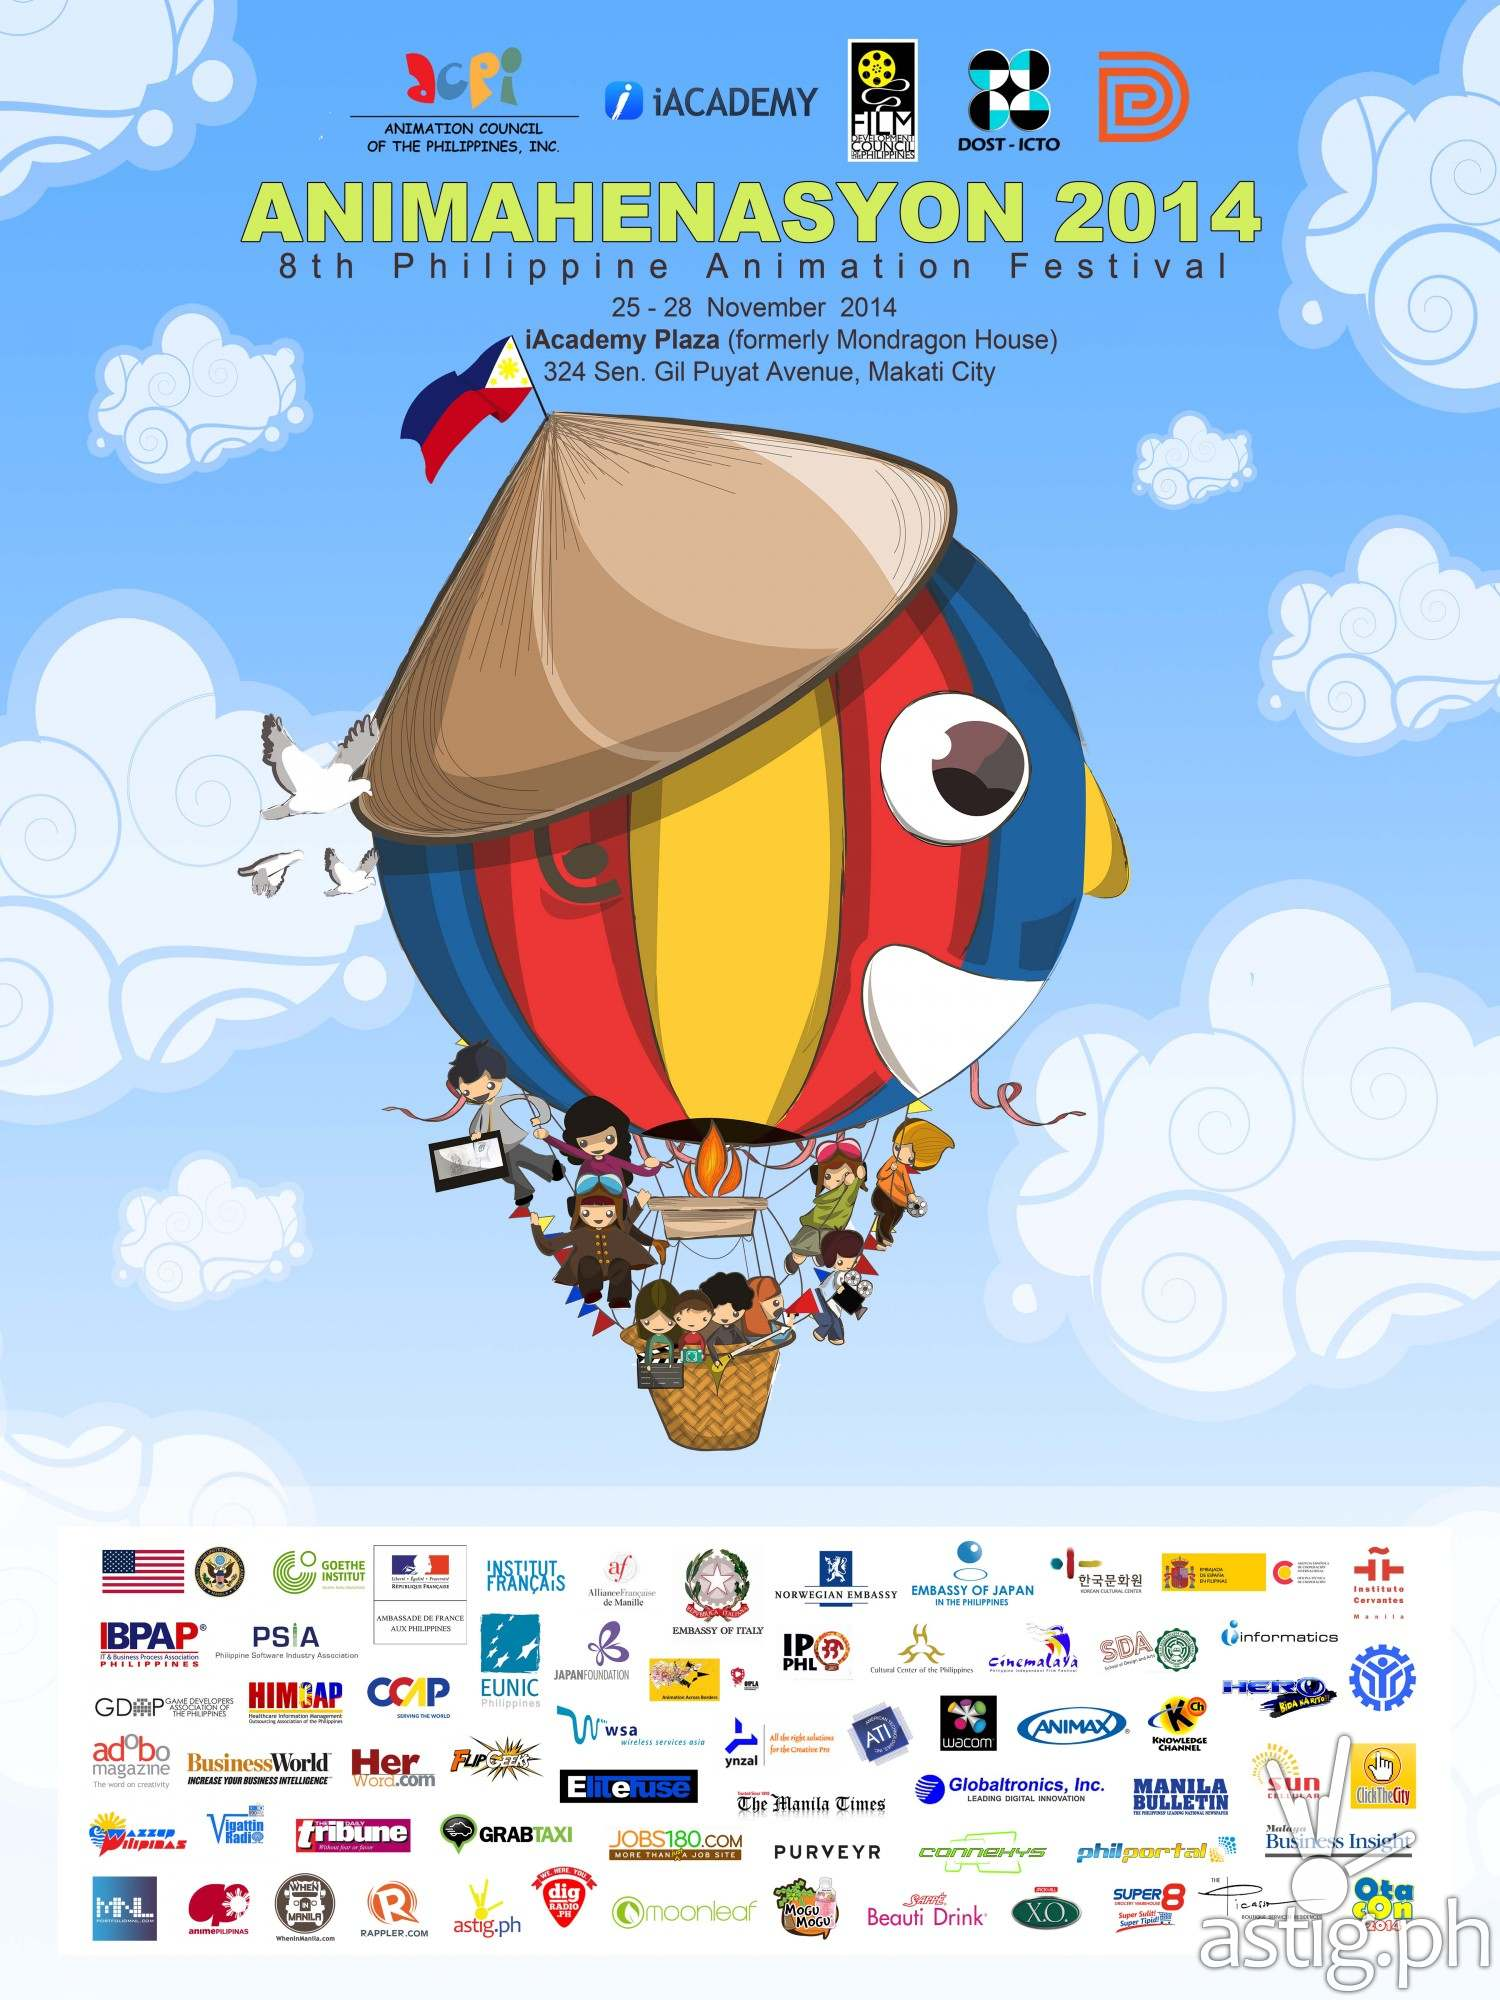 Official Animahenasyon 2014 Poster